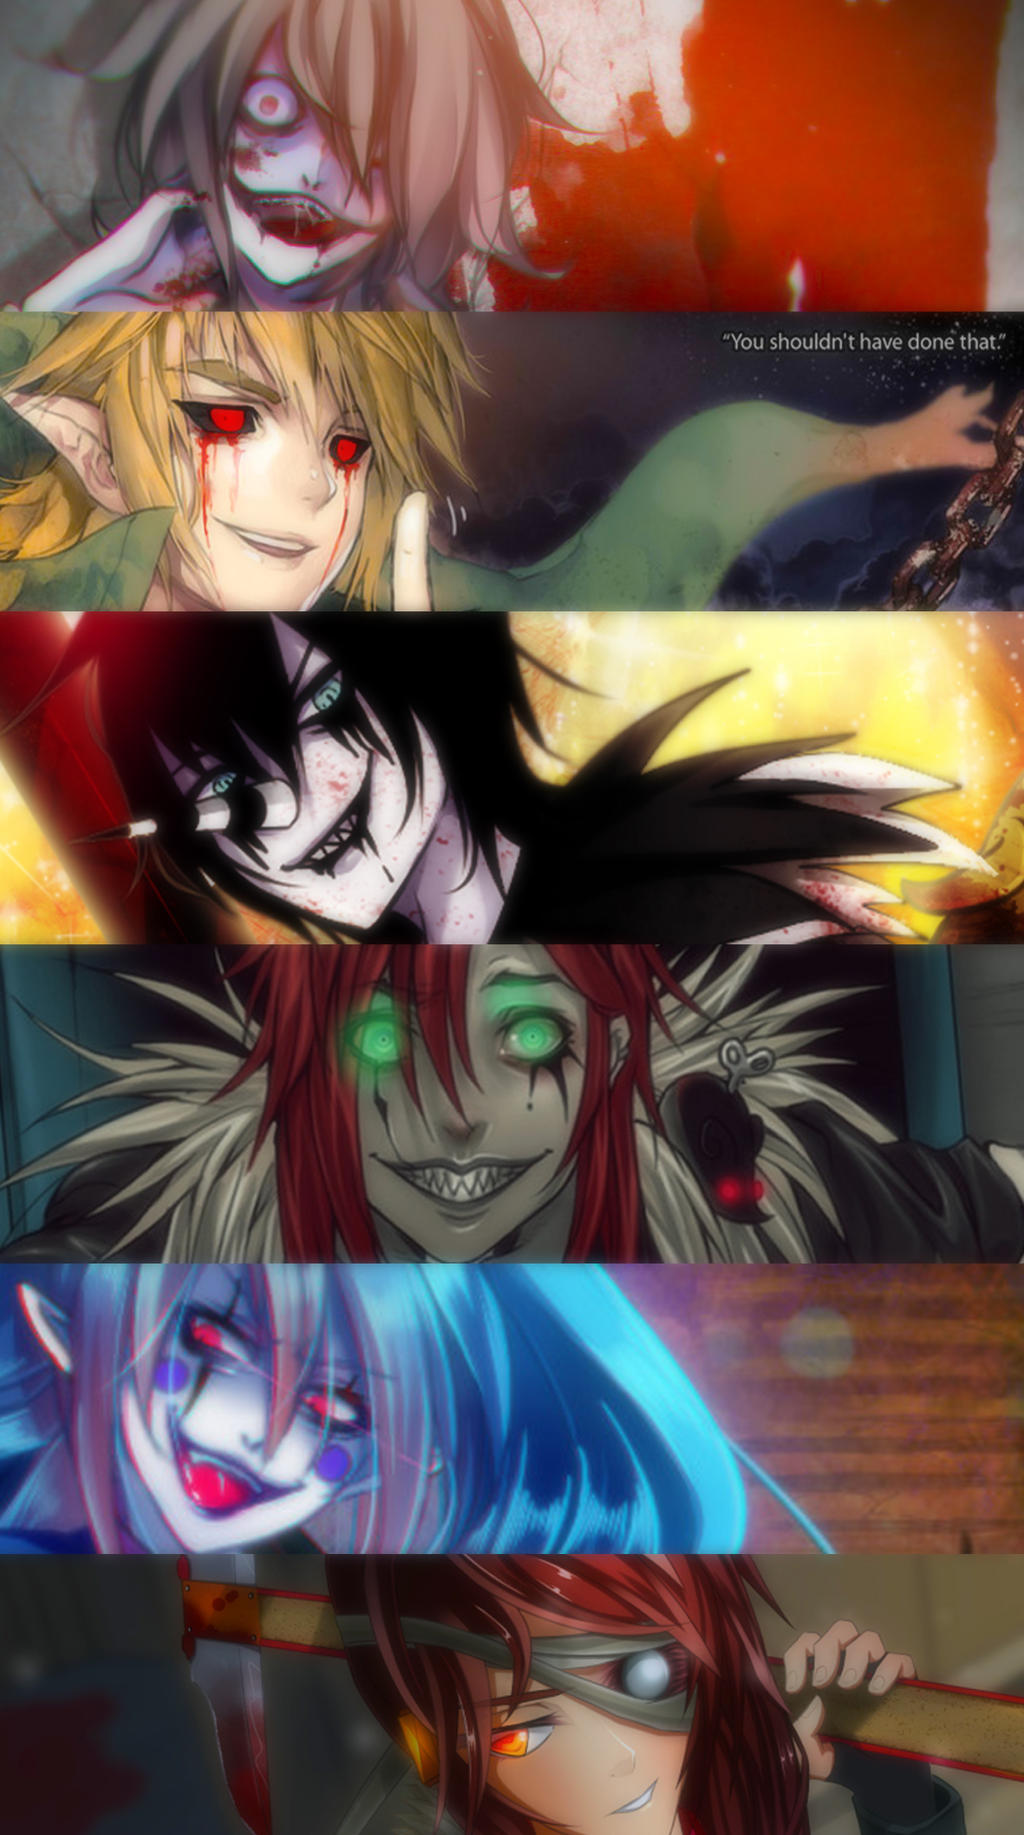 Anime Characters Laughing : My top favorite creepypasta characters by candypout on